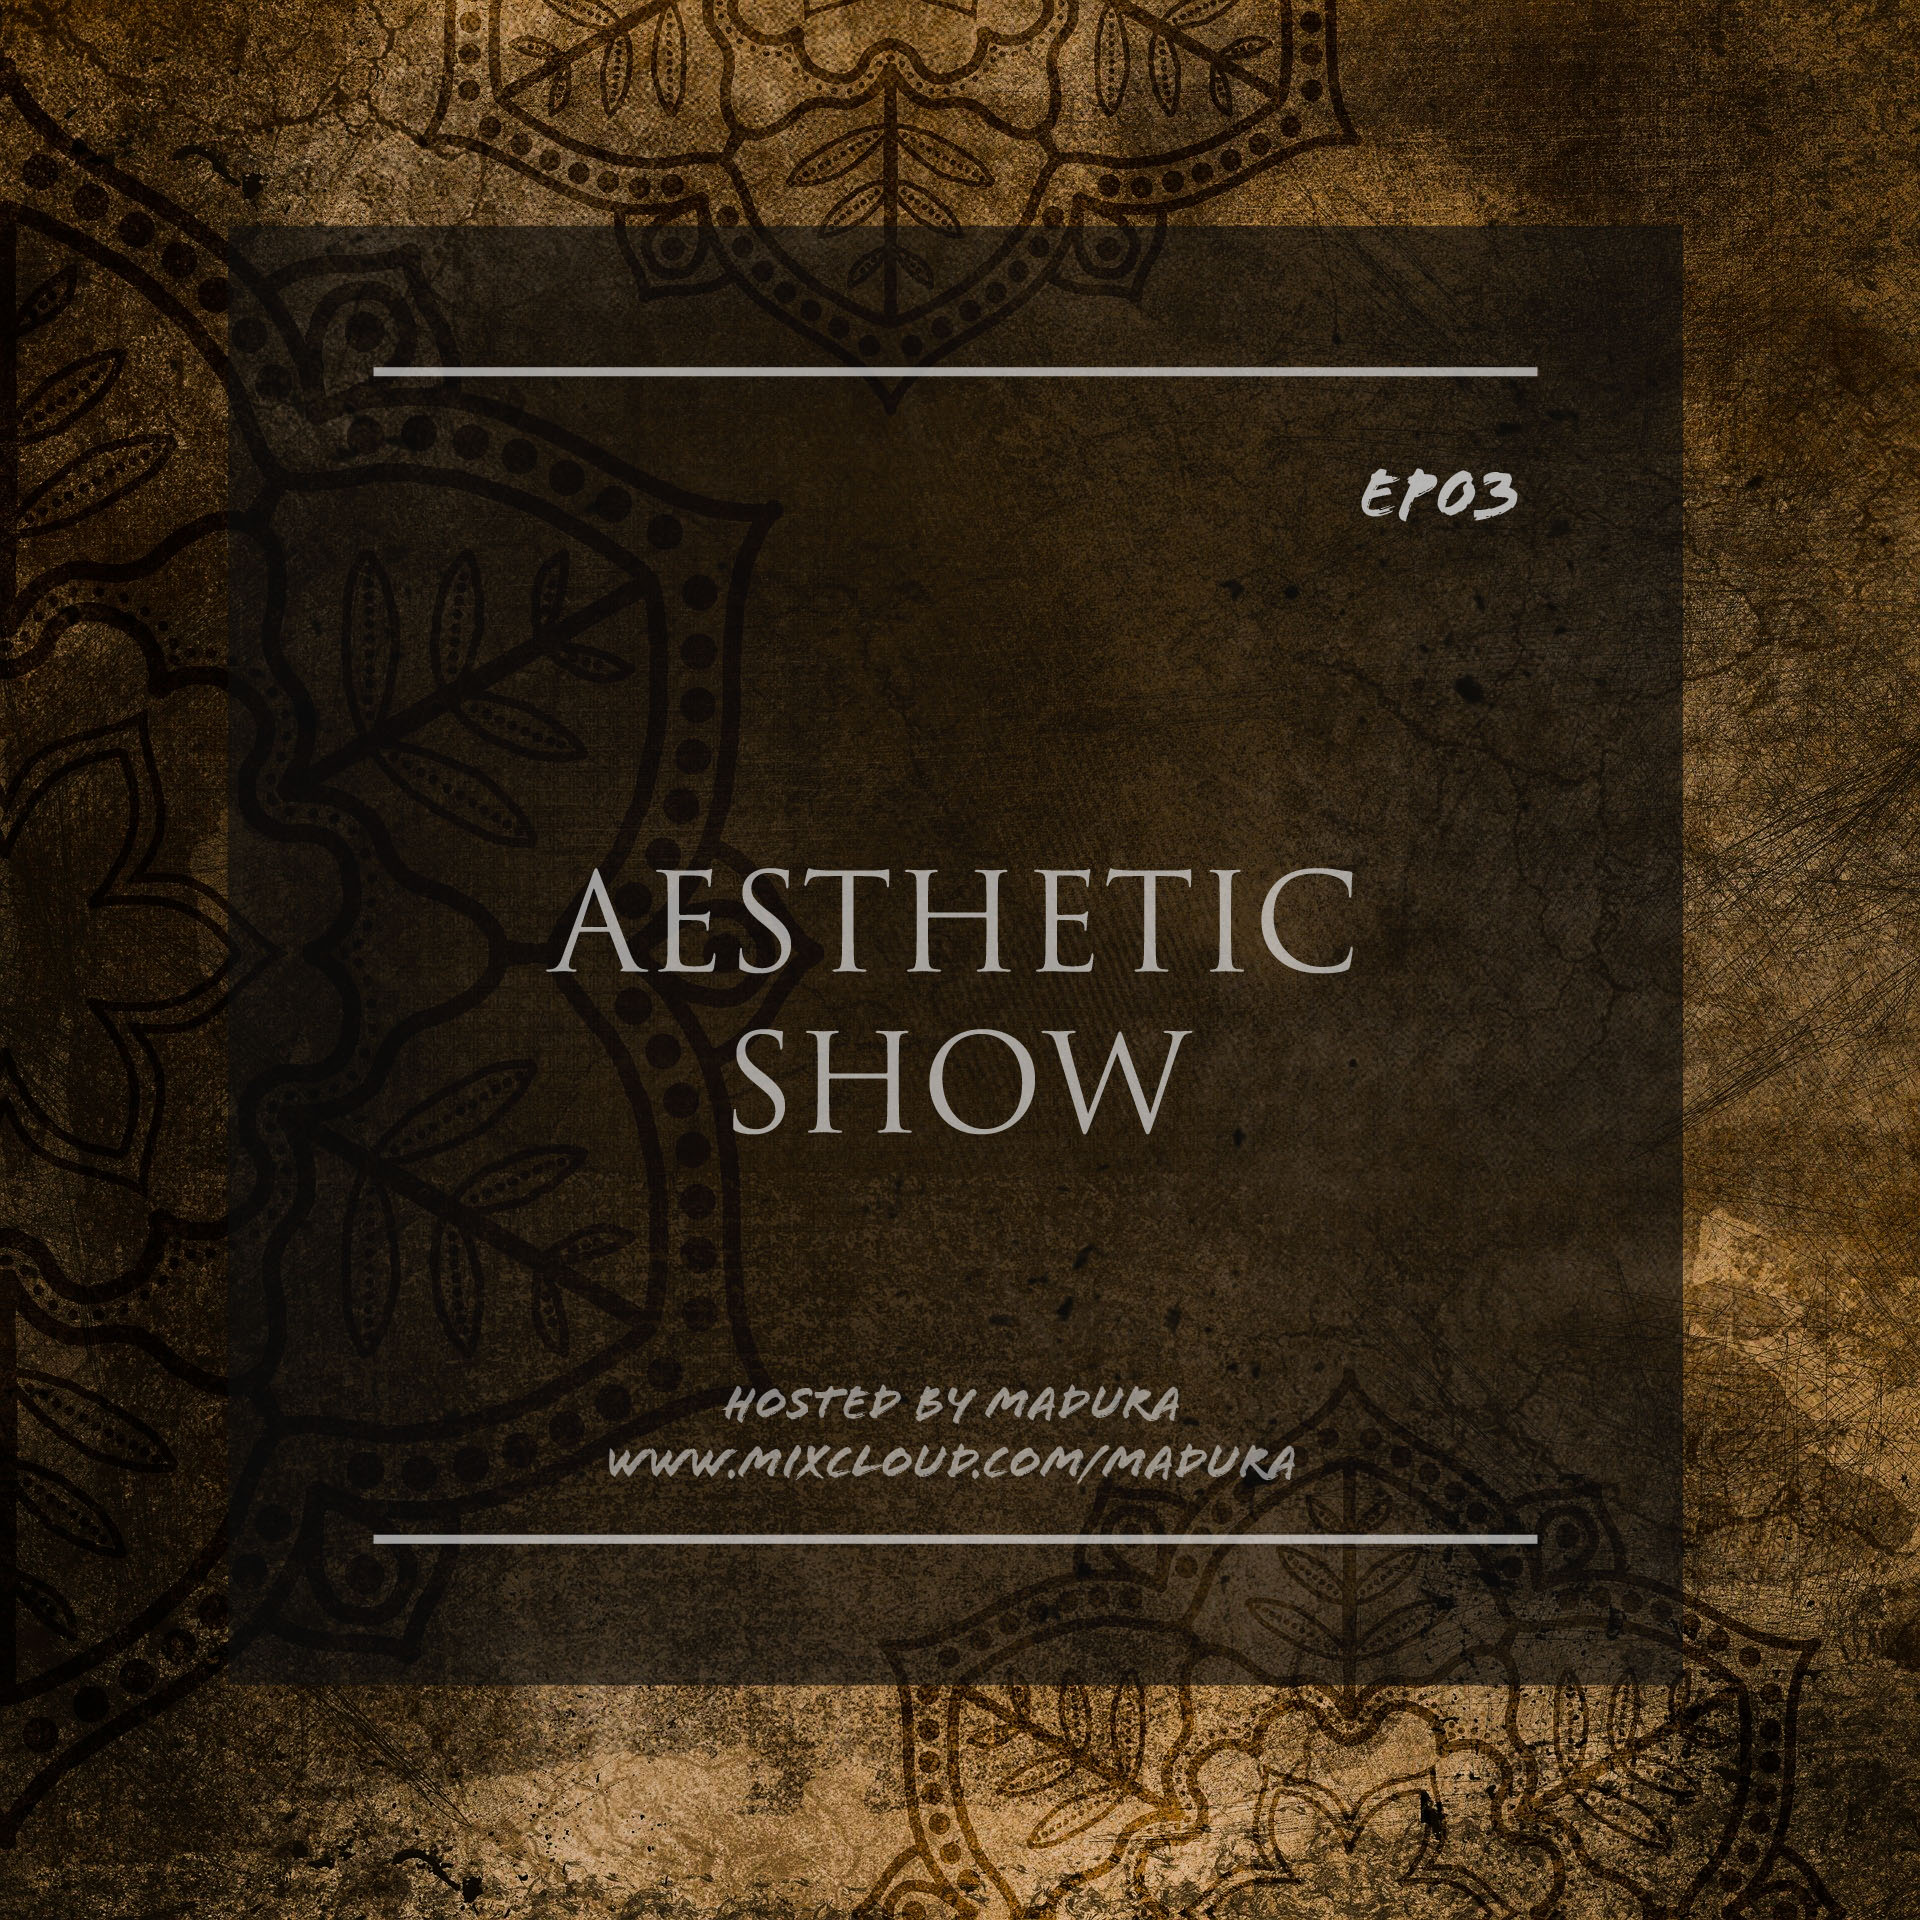 Aesthetic Show :: Aesthetic show Ep3 (aired on April 2nd) banner logo